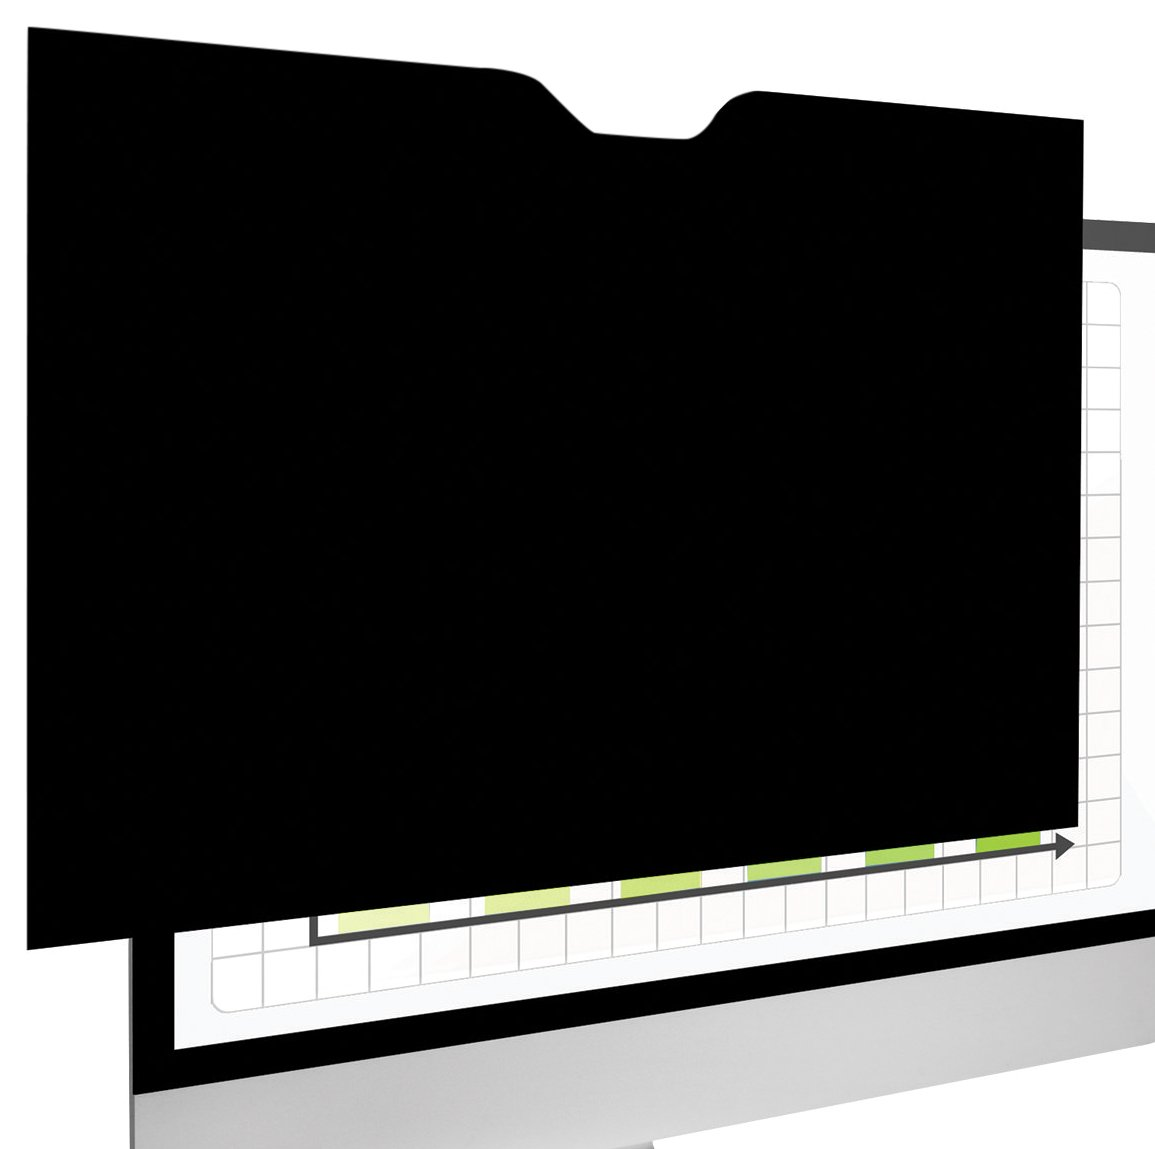 Fellowes 4818301 PrivaScreen Blackout Privacy Filter with Retina Display for 13'' MacBook Pro